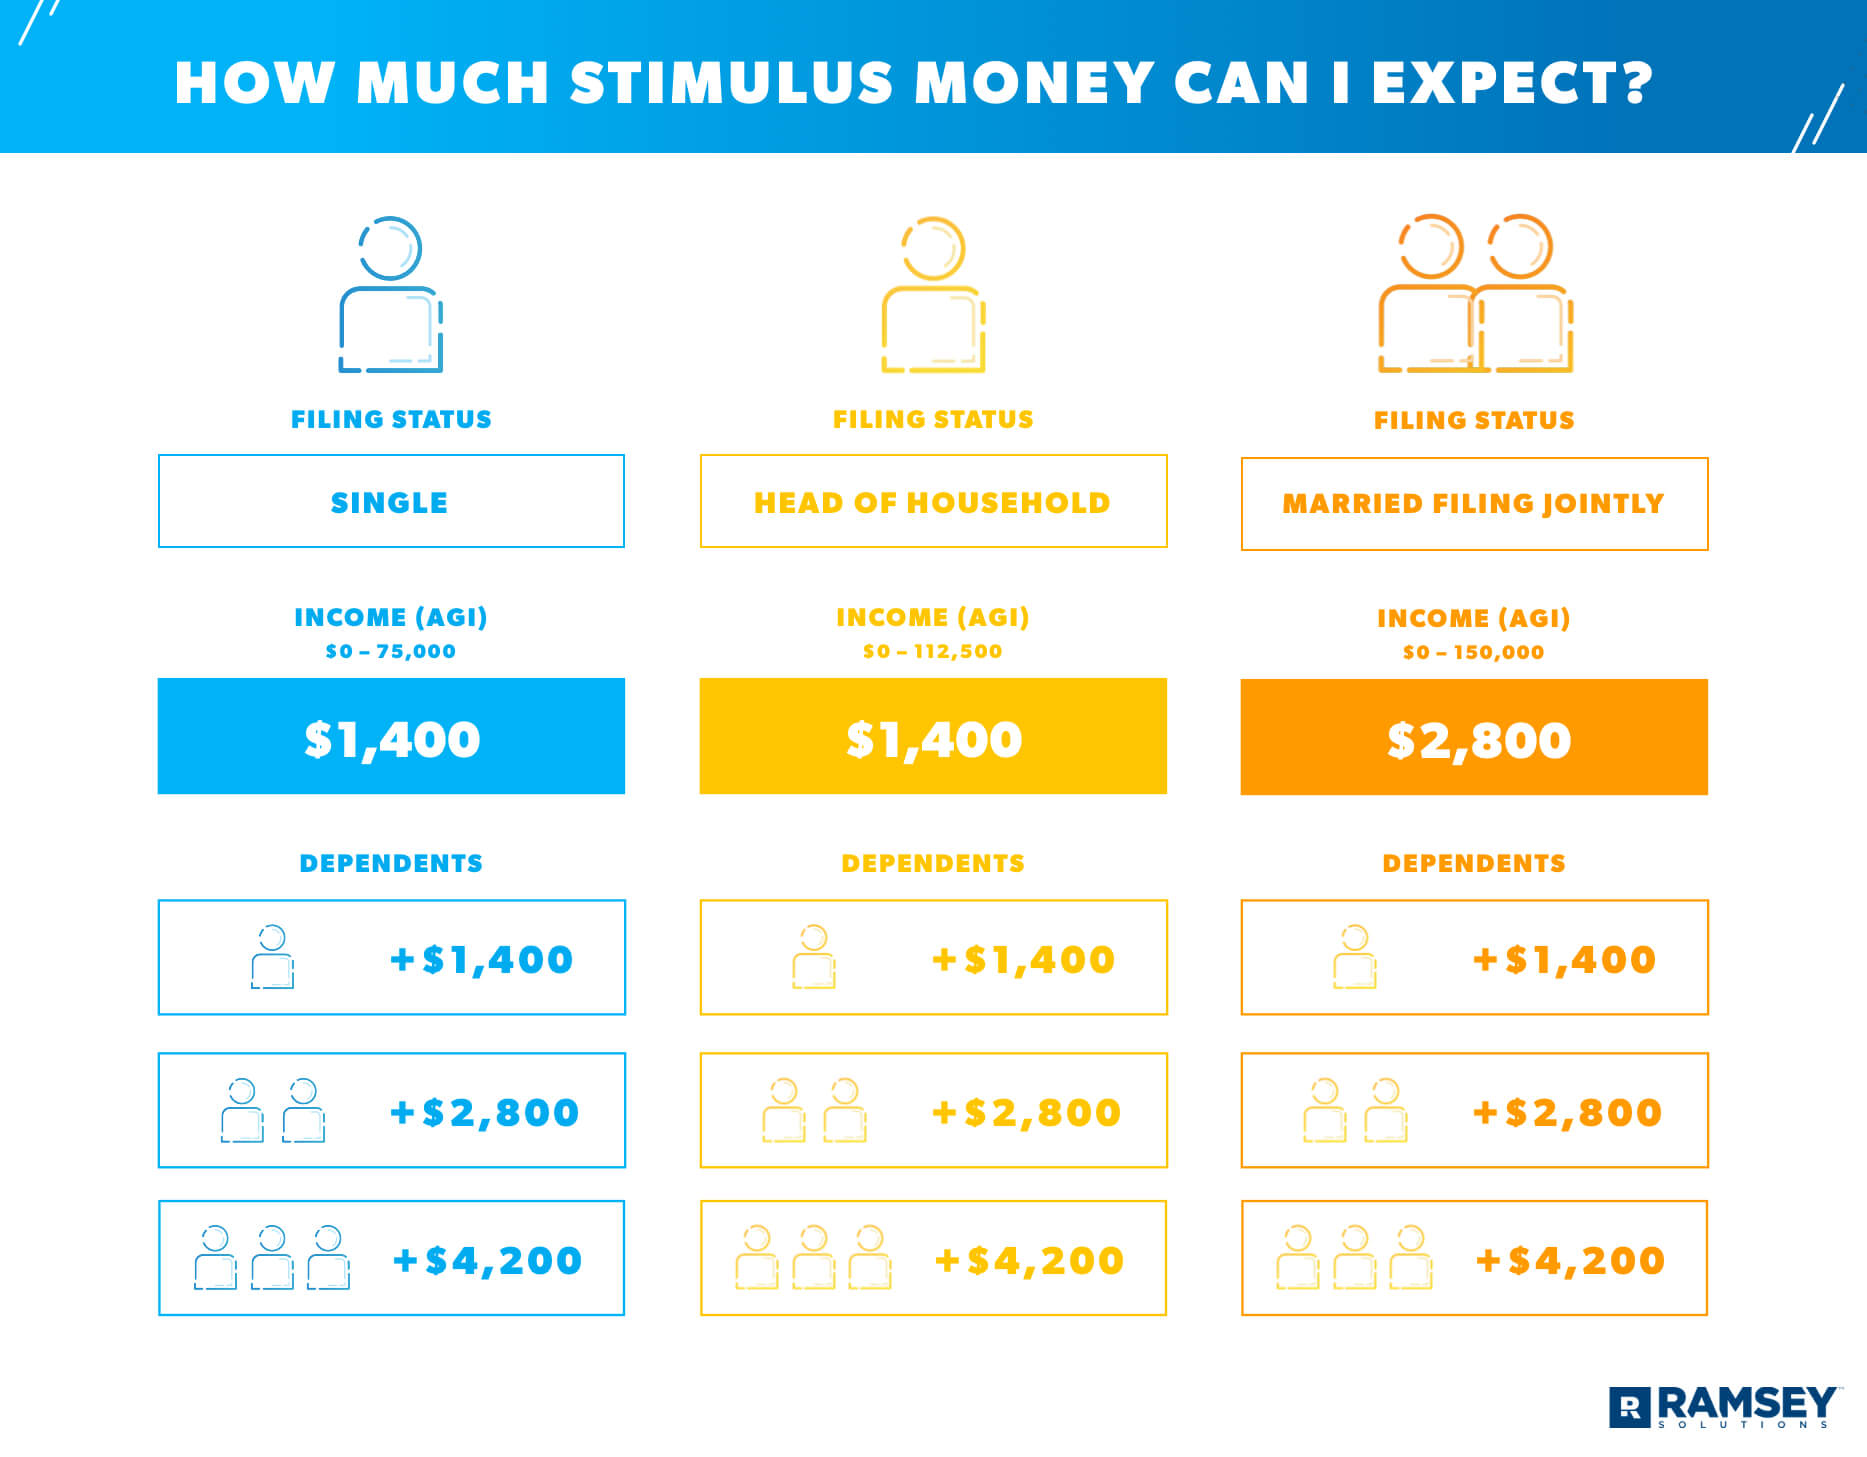 How much stimulus money can I expect?